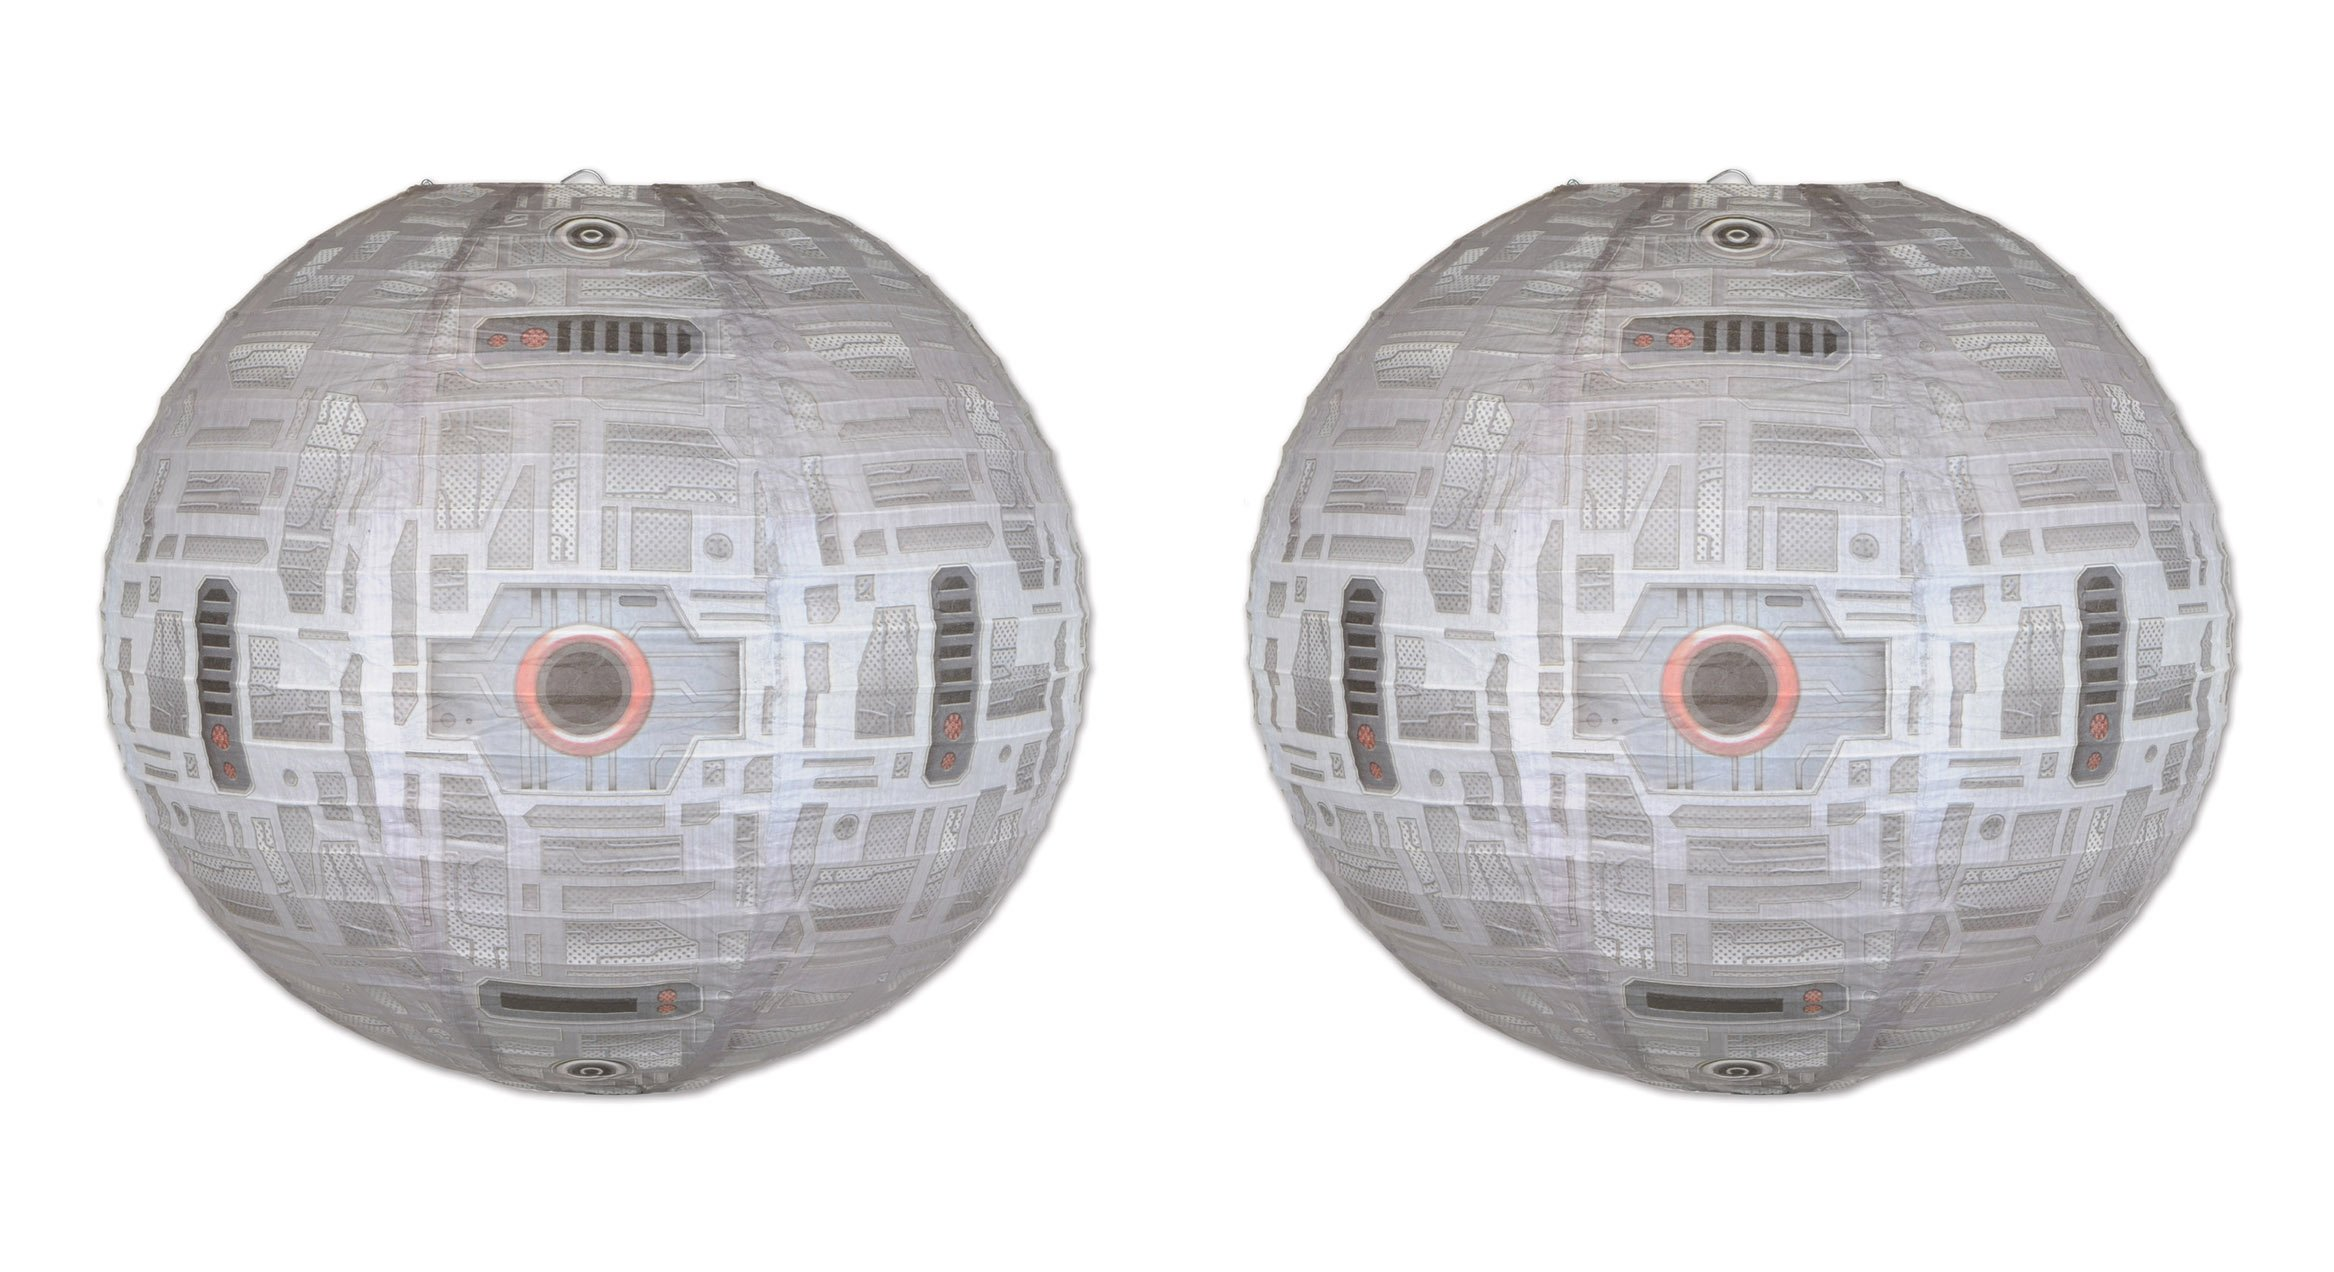 Beistle 59895 2Piece Space Station Paper Lanterns, 15.5'', Multicolored